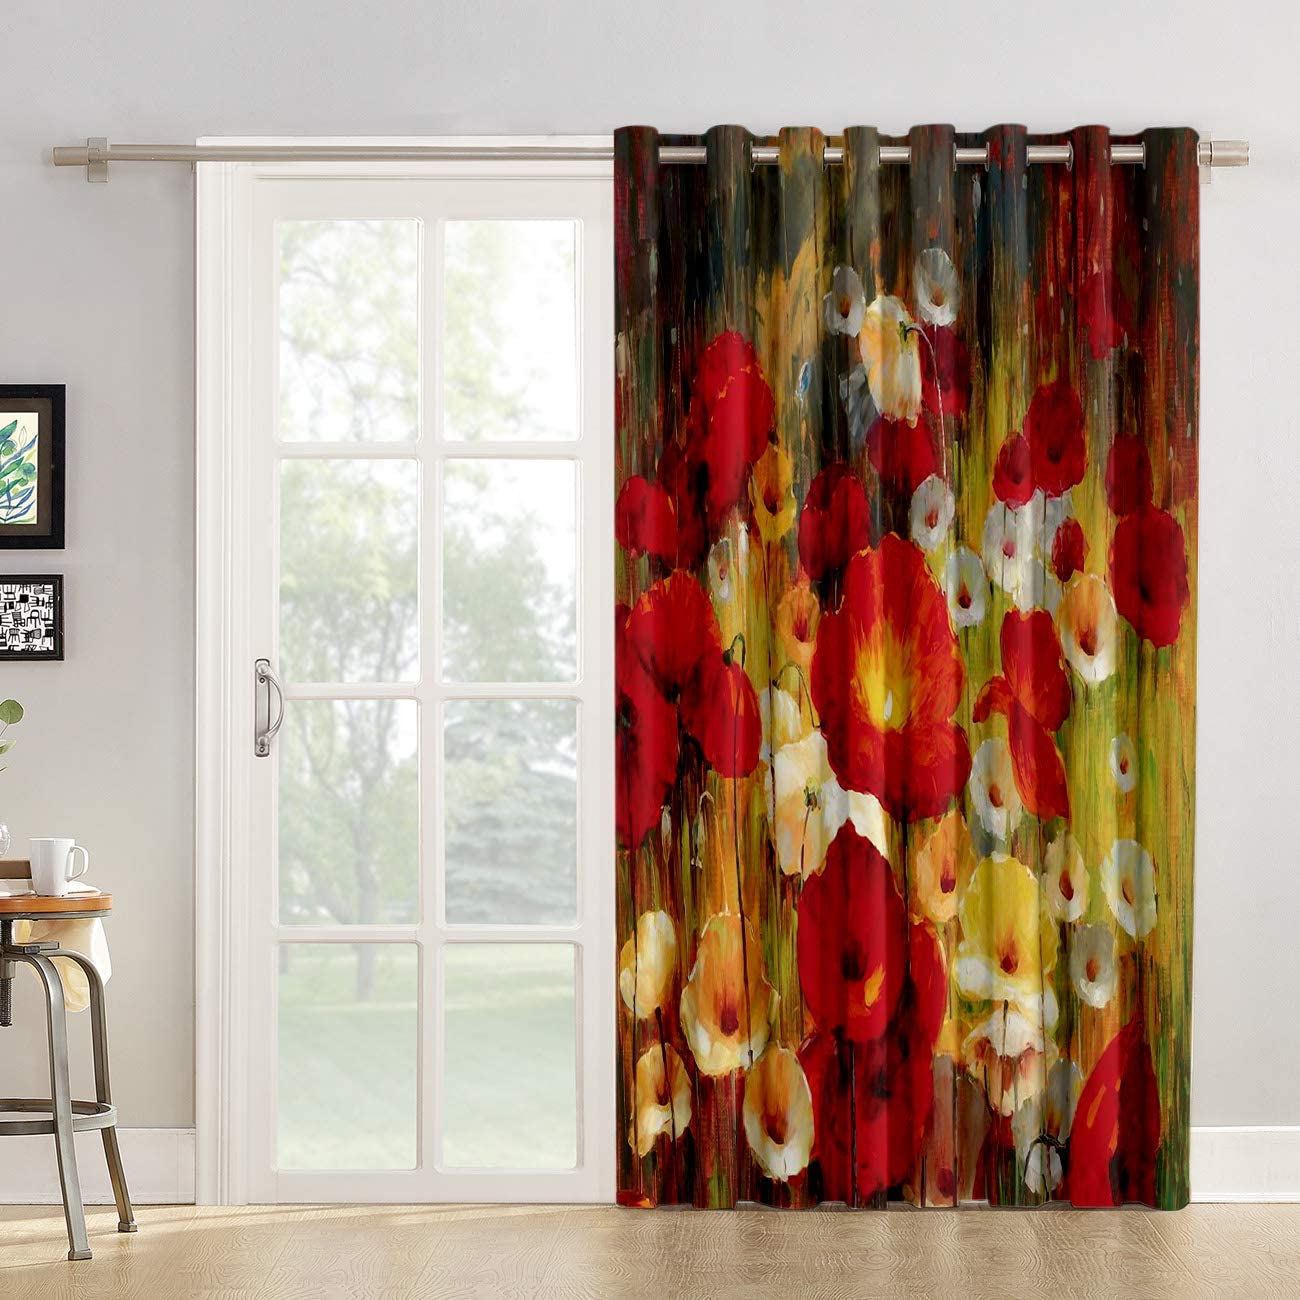 Kitchen Tier Curtains 96 inch Length Chic Window Drapes Panel for Living Room Bedroom Retro Poppy Flower Floral Painting Style Red Yellow Patterned Fabric Curtain for Sliding Glass Door Patio Door